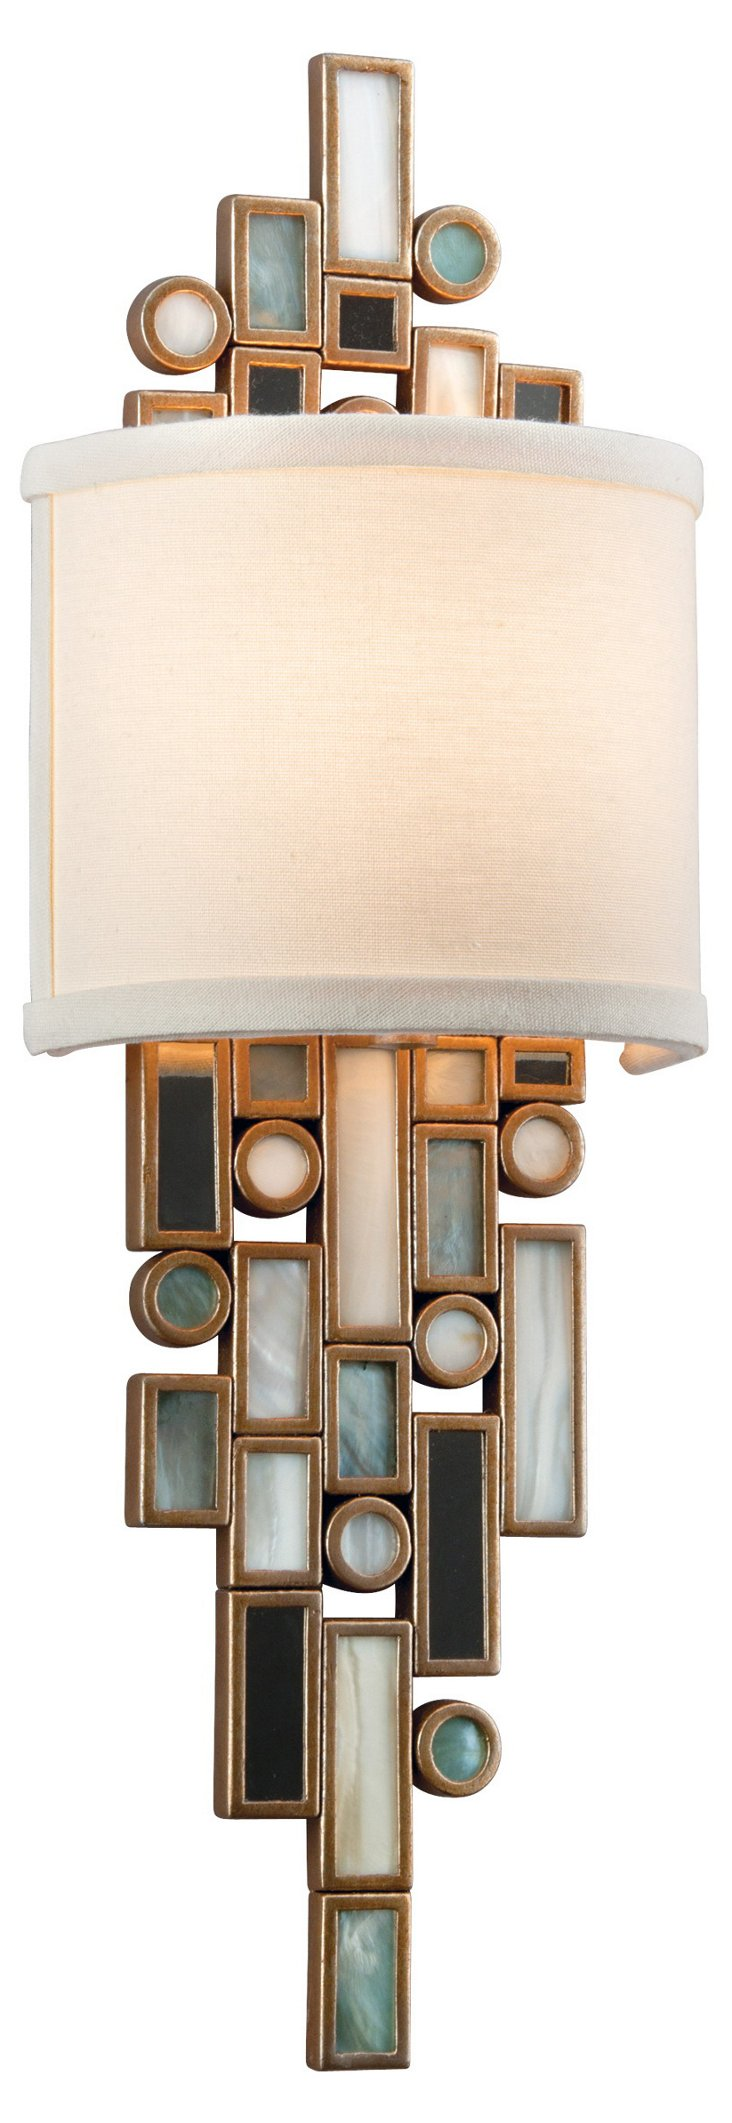 Dolcetti 1-Light Wall Sconce, Silver